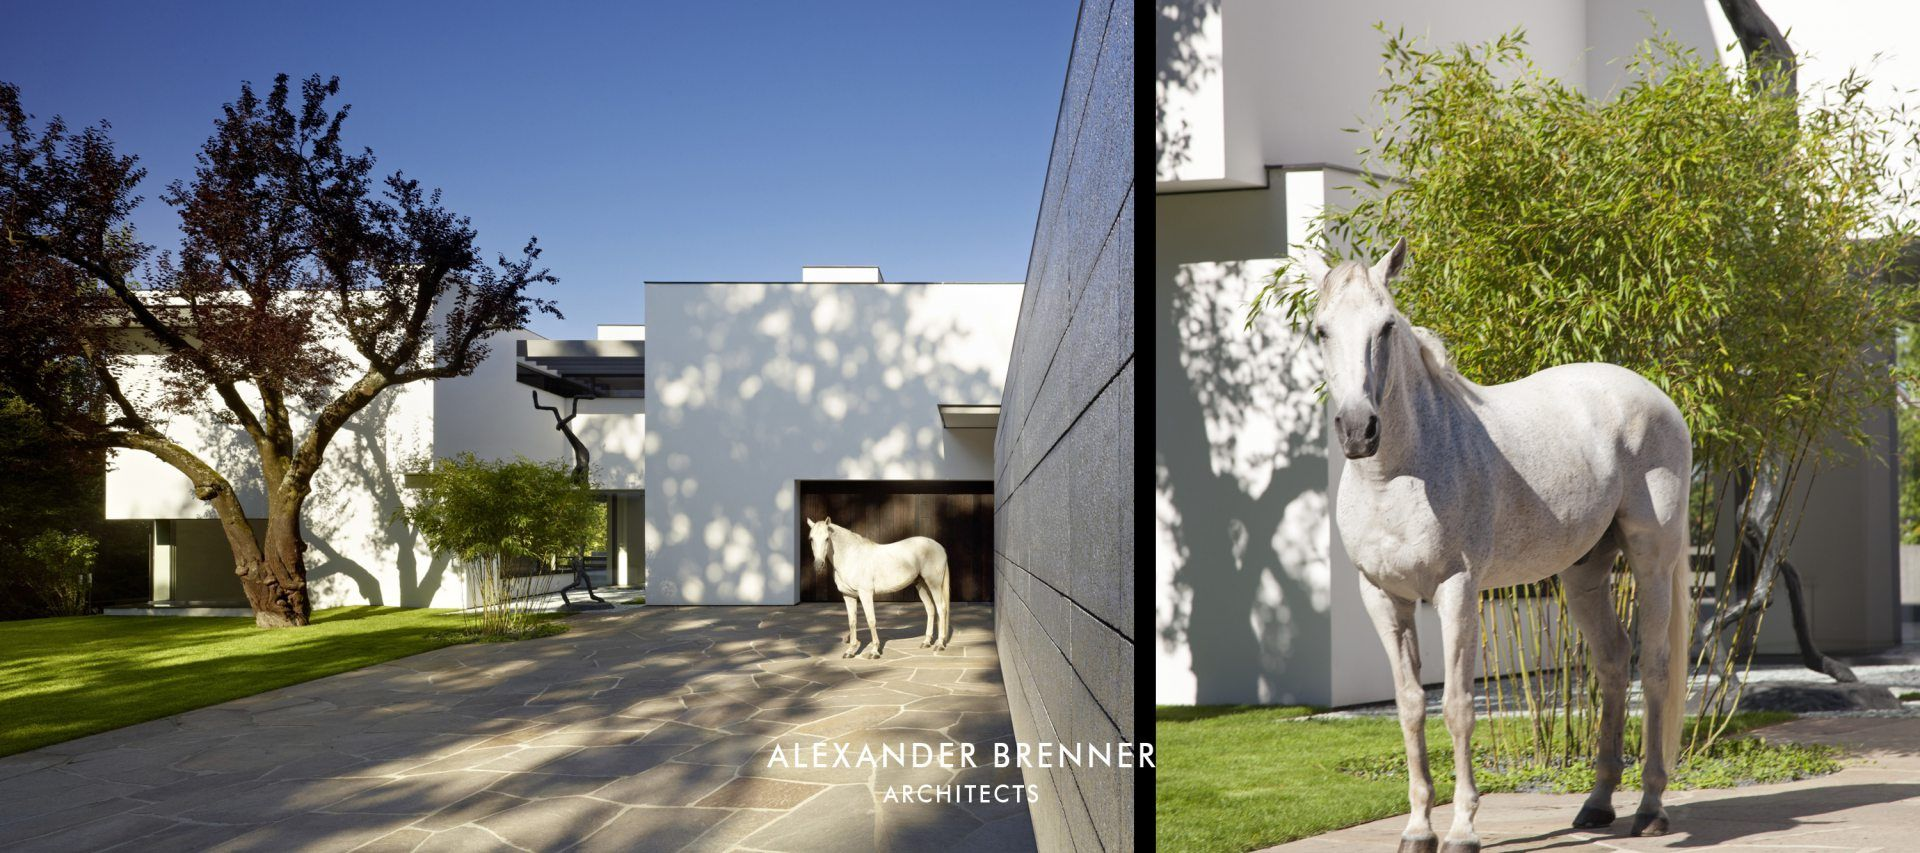 Alexander Brenner Architects (alexanderbrenne) on Pinterest